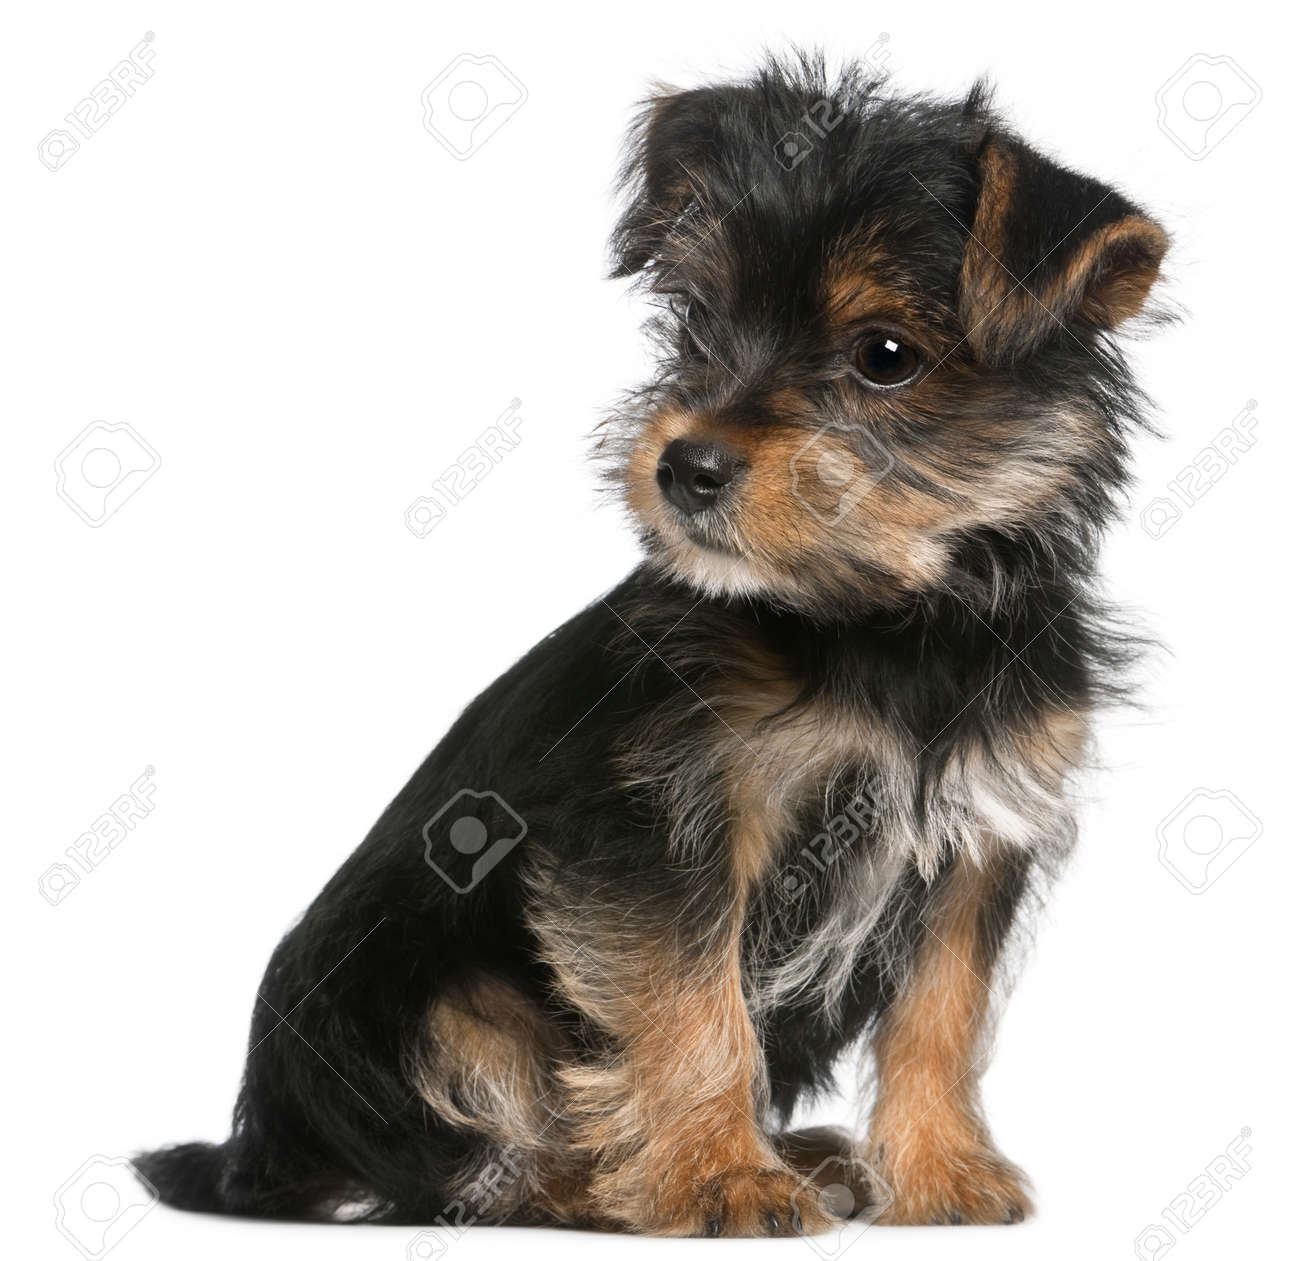 Yorkshire Terrier Puppy 3 Months Old Sitting In Front Of White